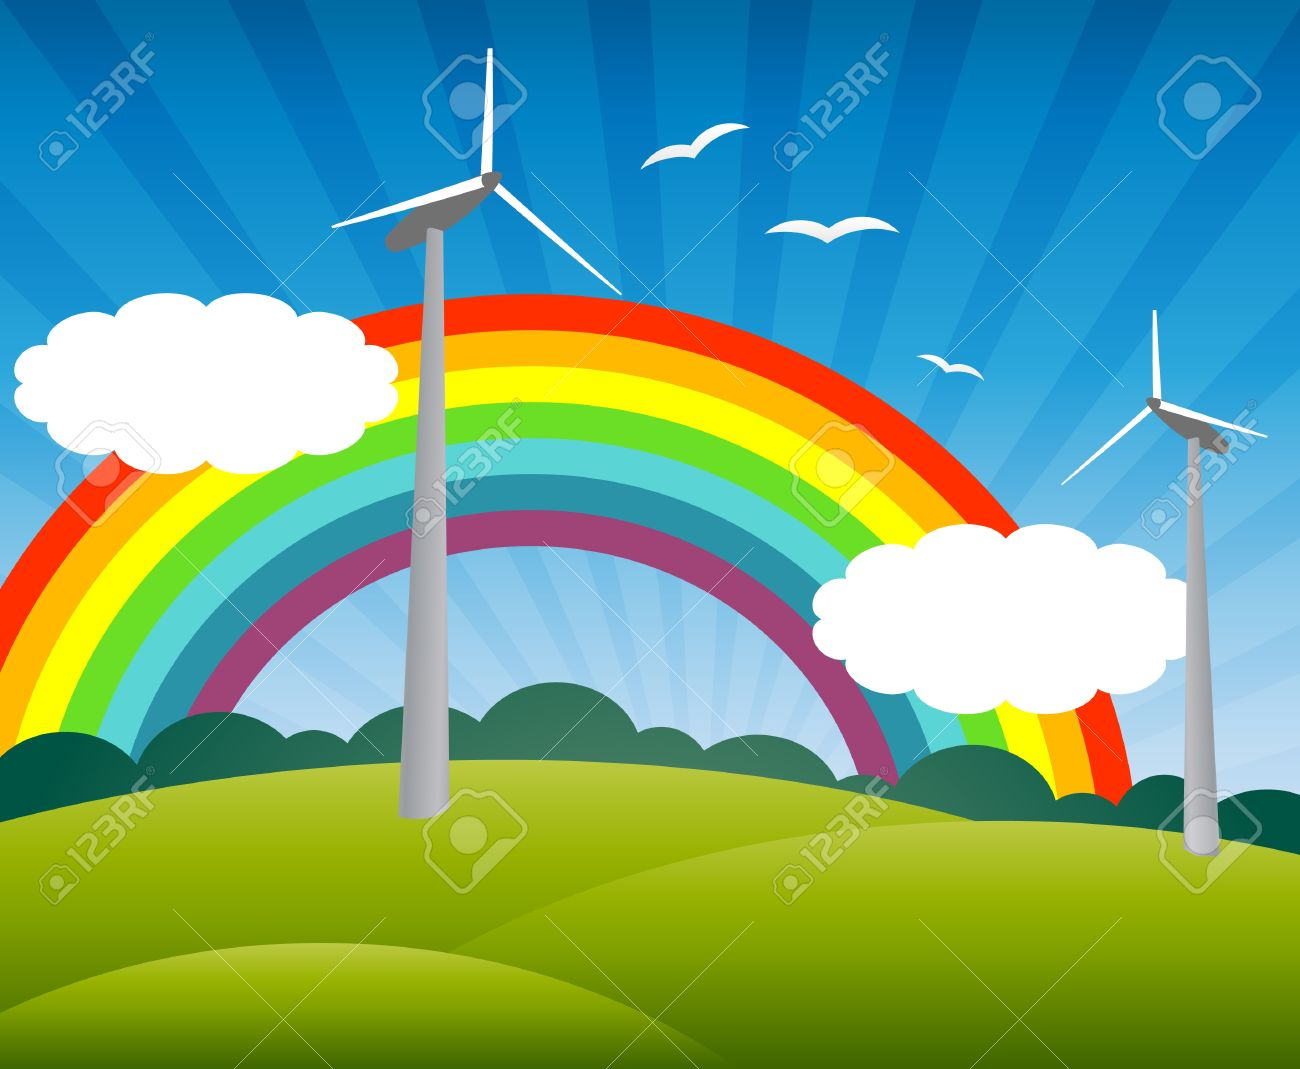 Landscape with windmills, a rainbow, birds and clouds - 9621947